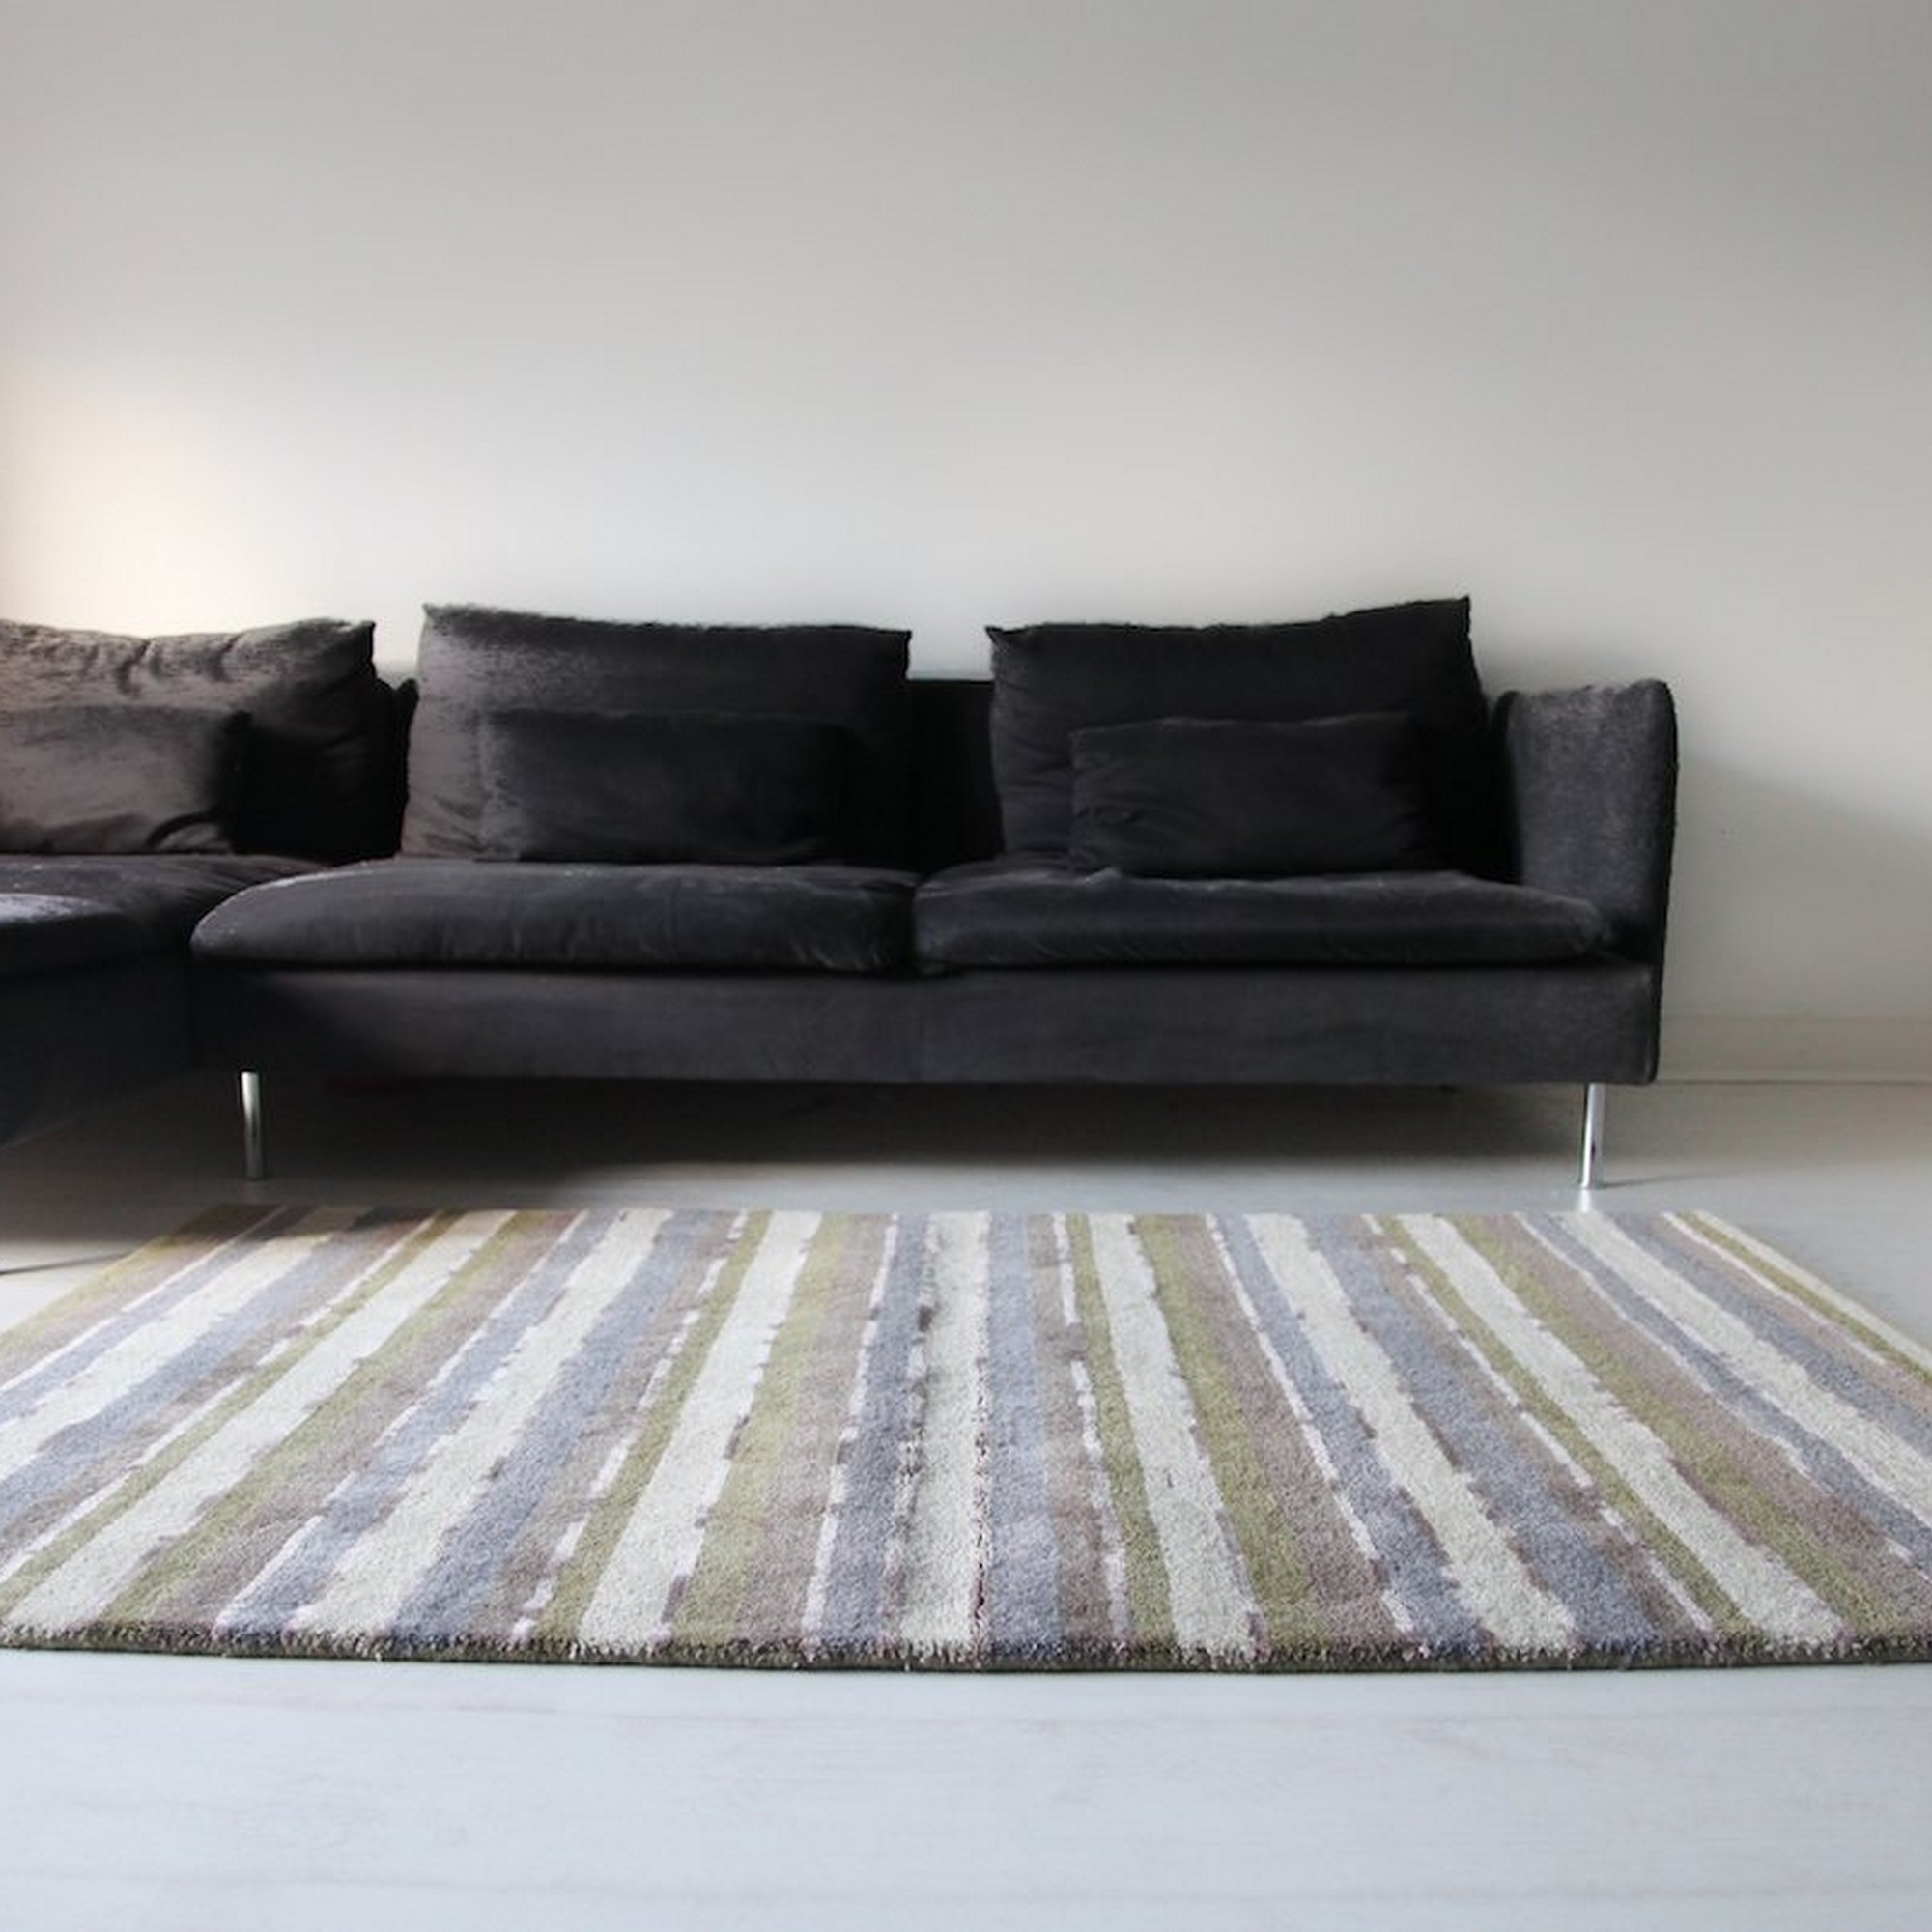 Supreme Handloom Multistripe Rugs in Sage